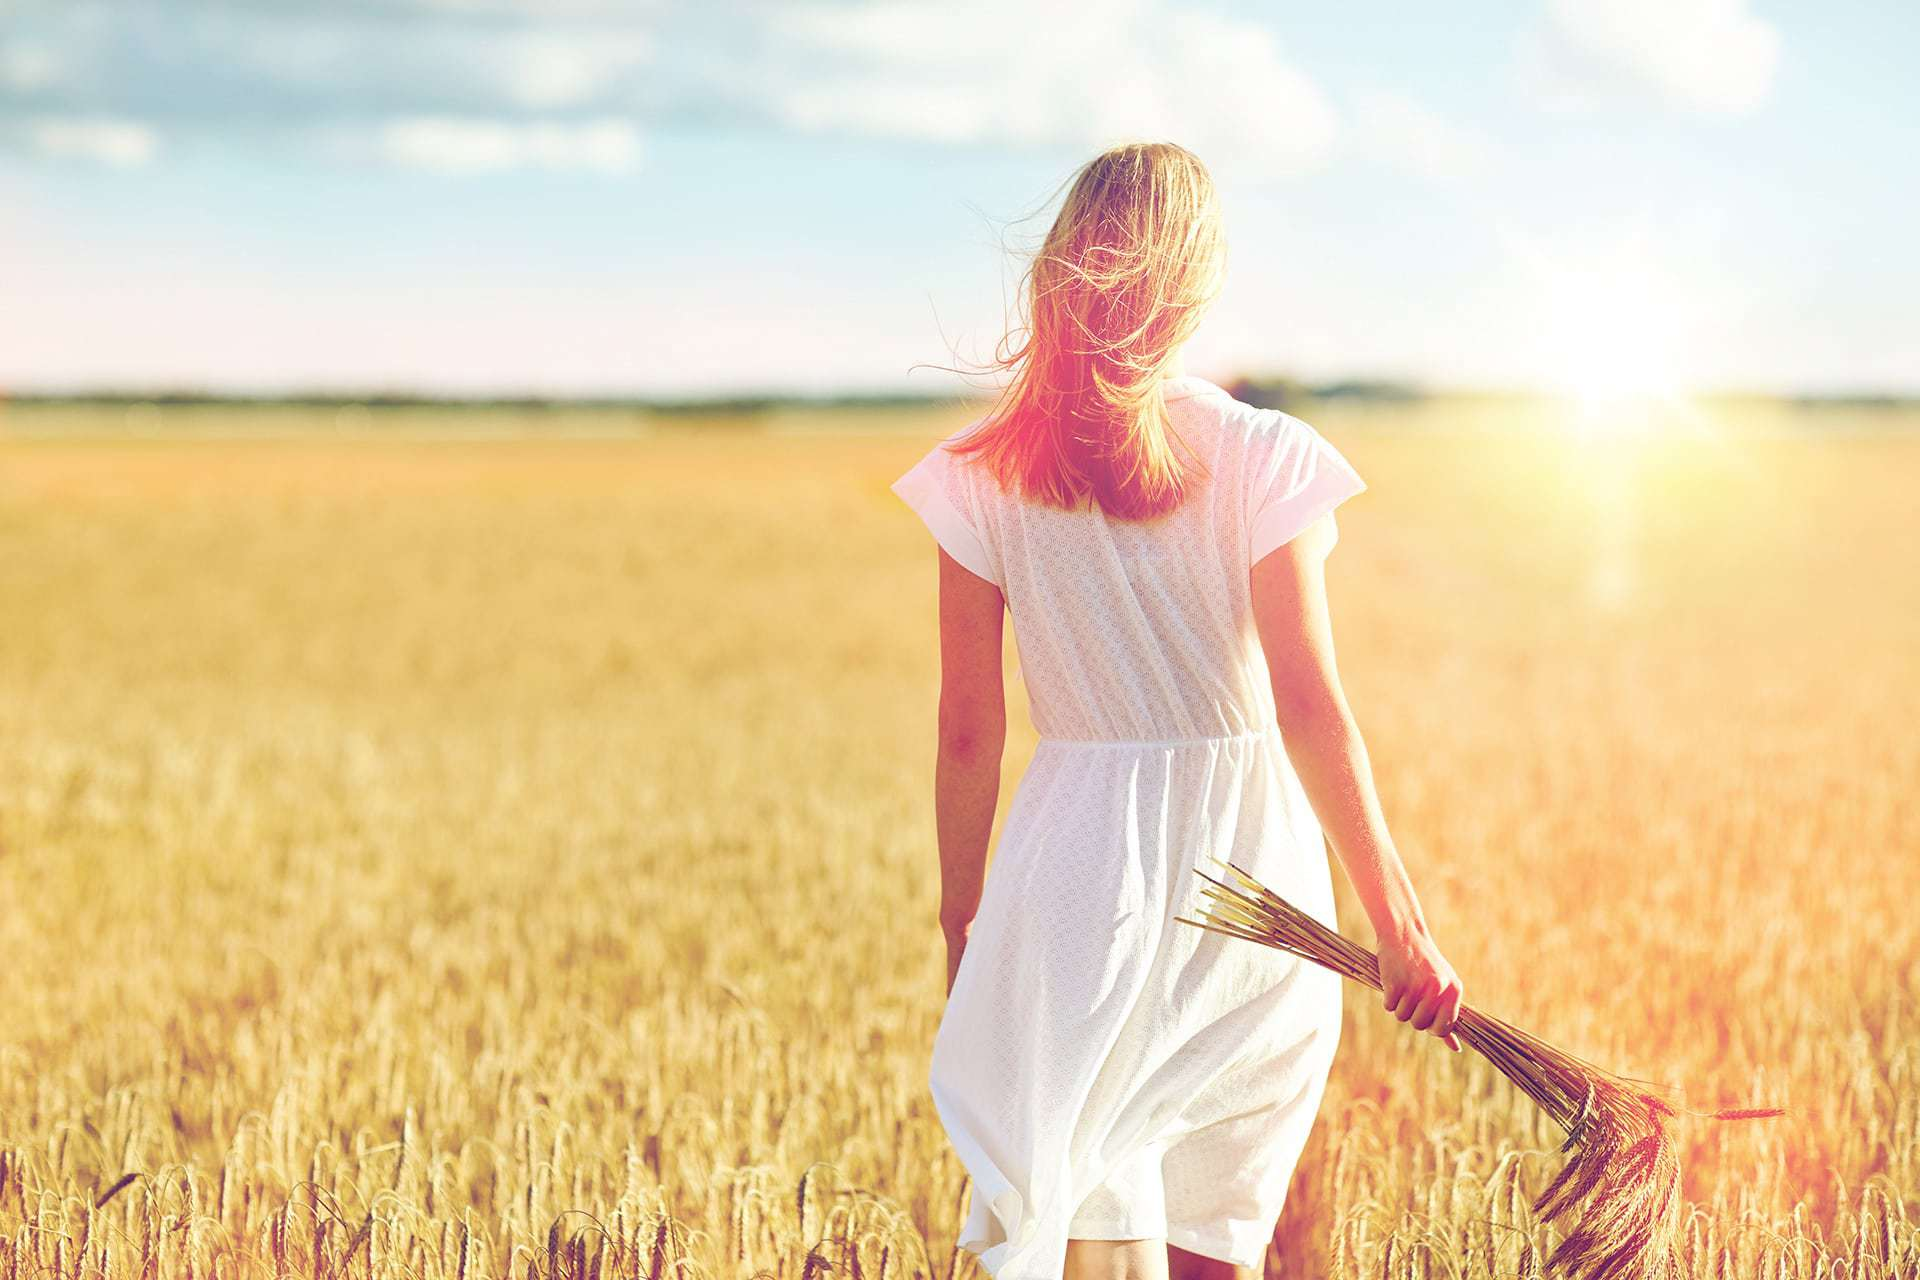 What to look for in a godly woman